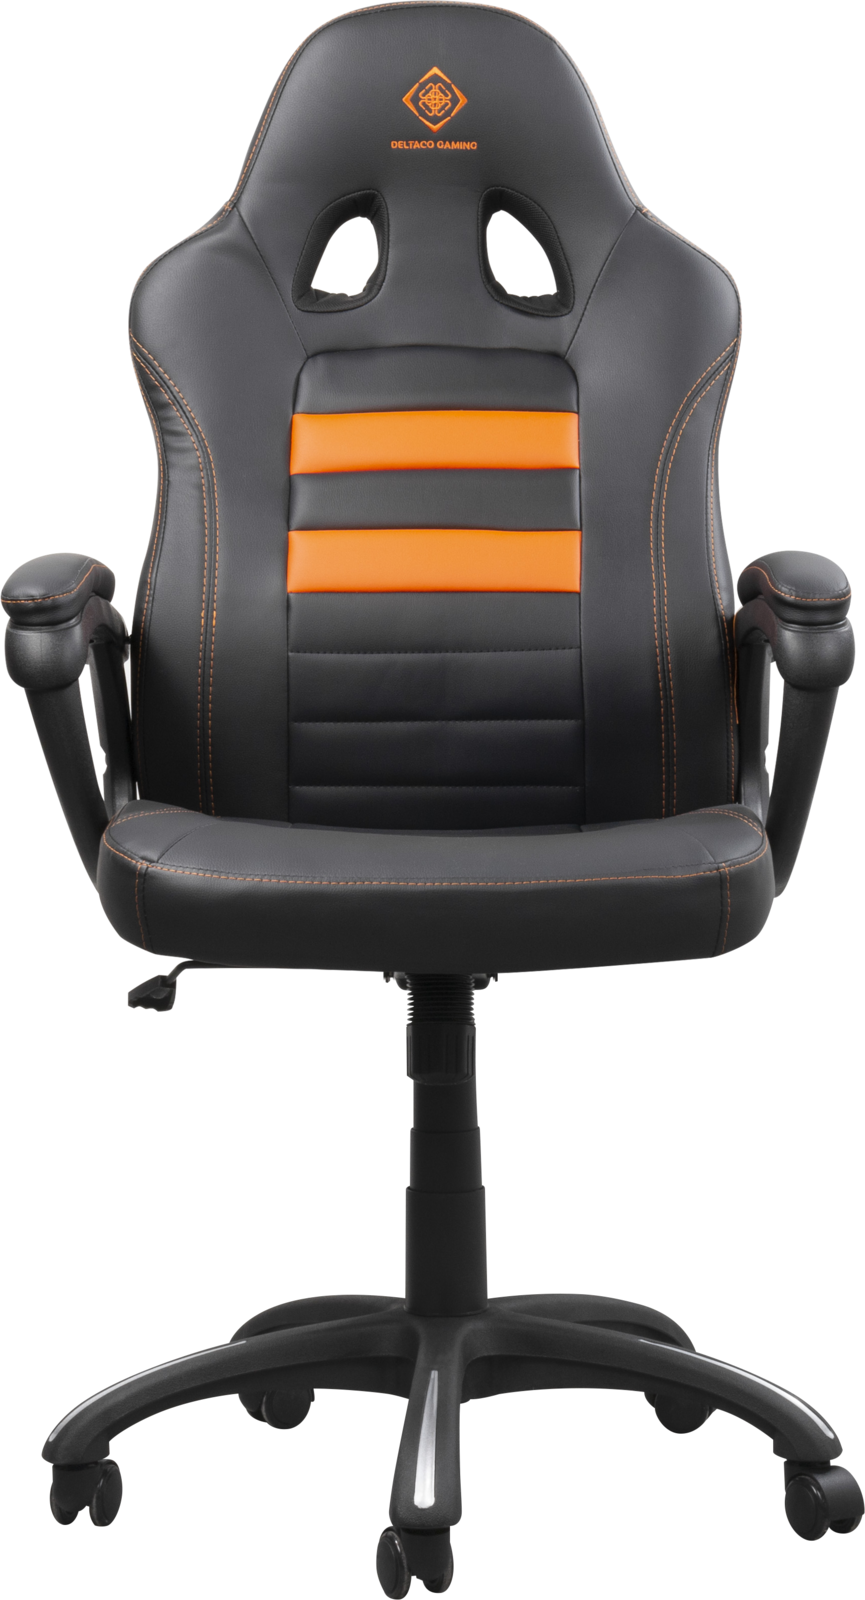 Deltaco Gaming Chair acer Leatherette V3788-5